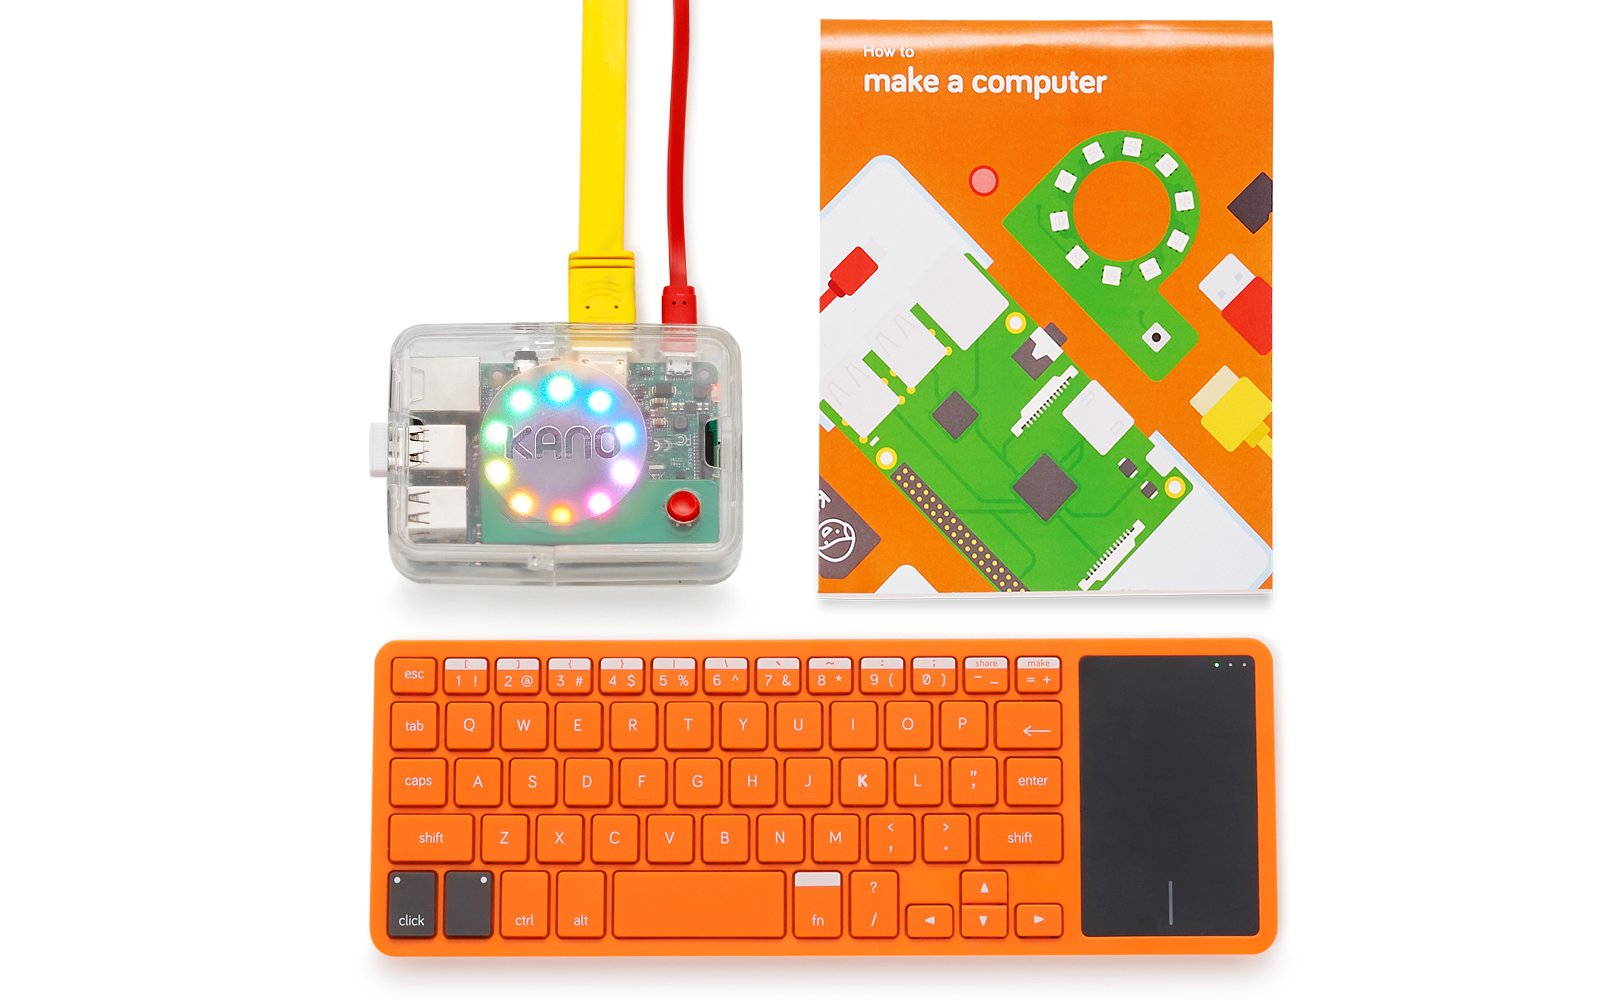 'Kano Computer Kit 2017 – Make a computer, learn to code